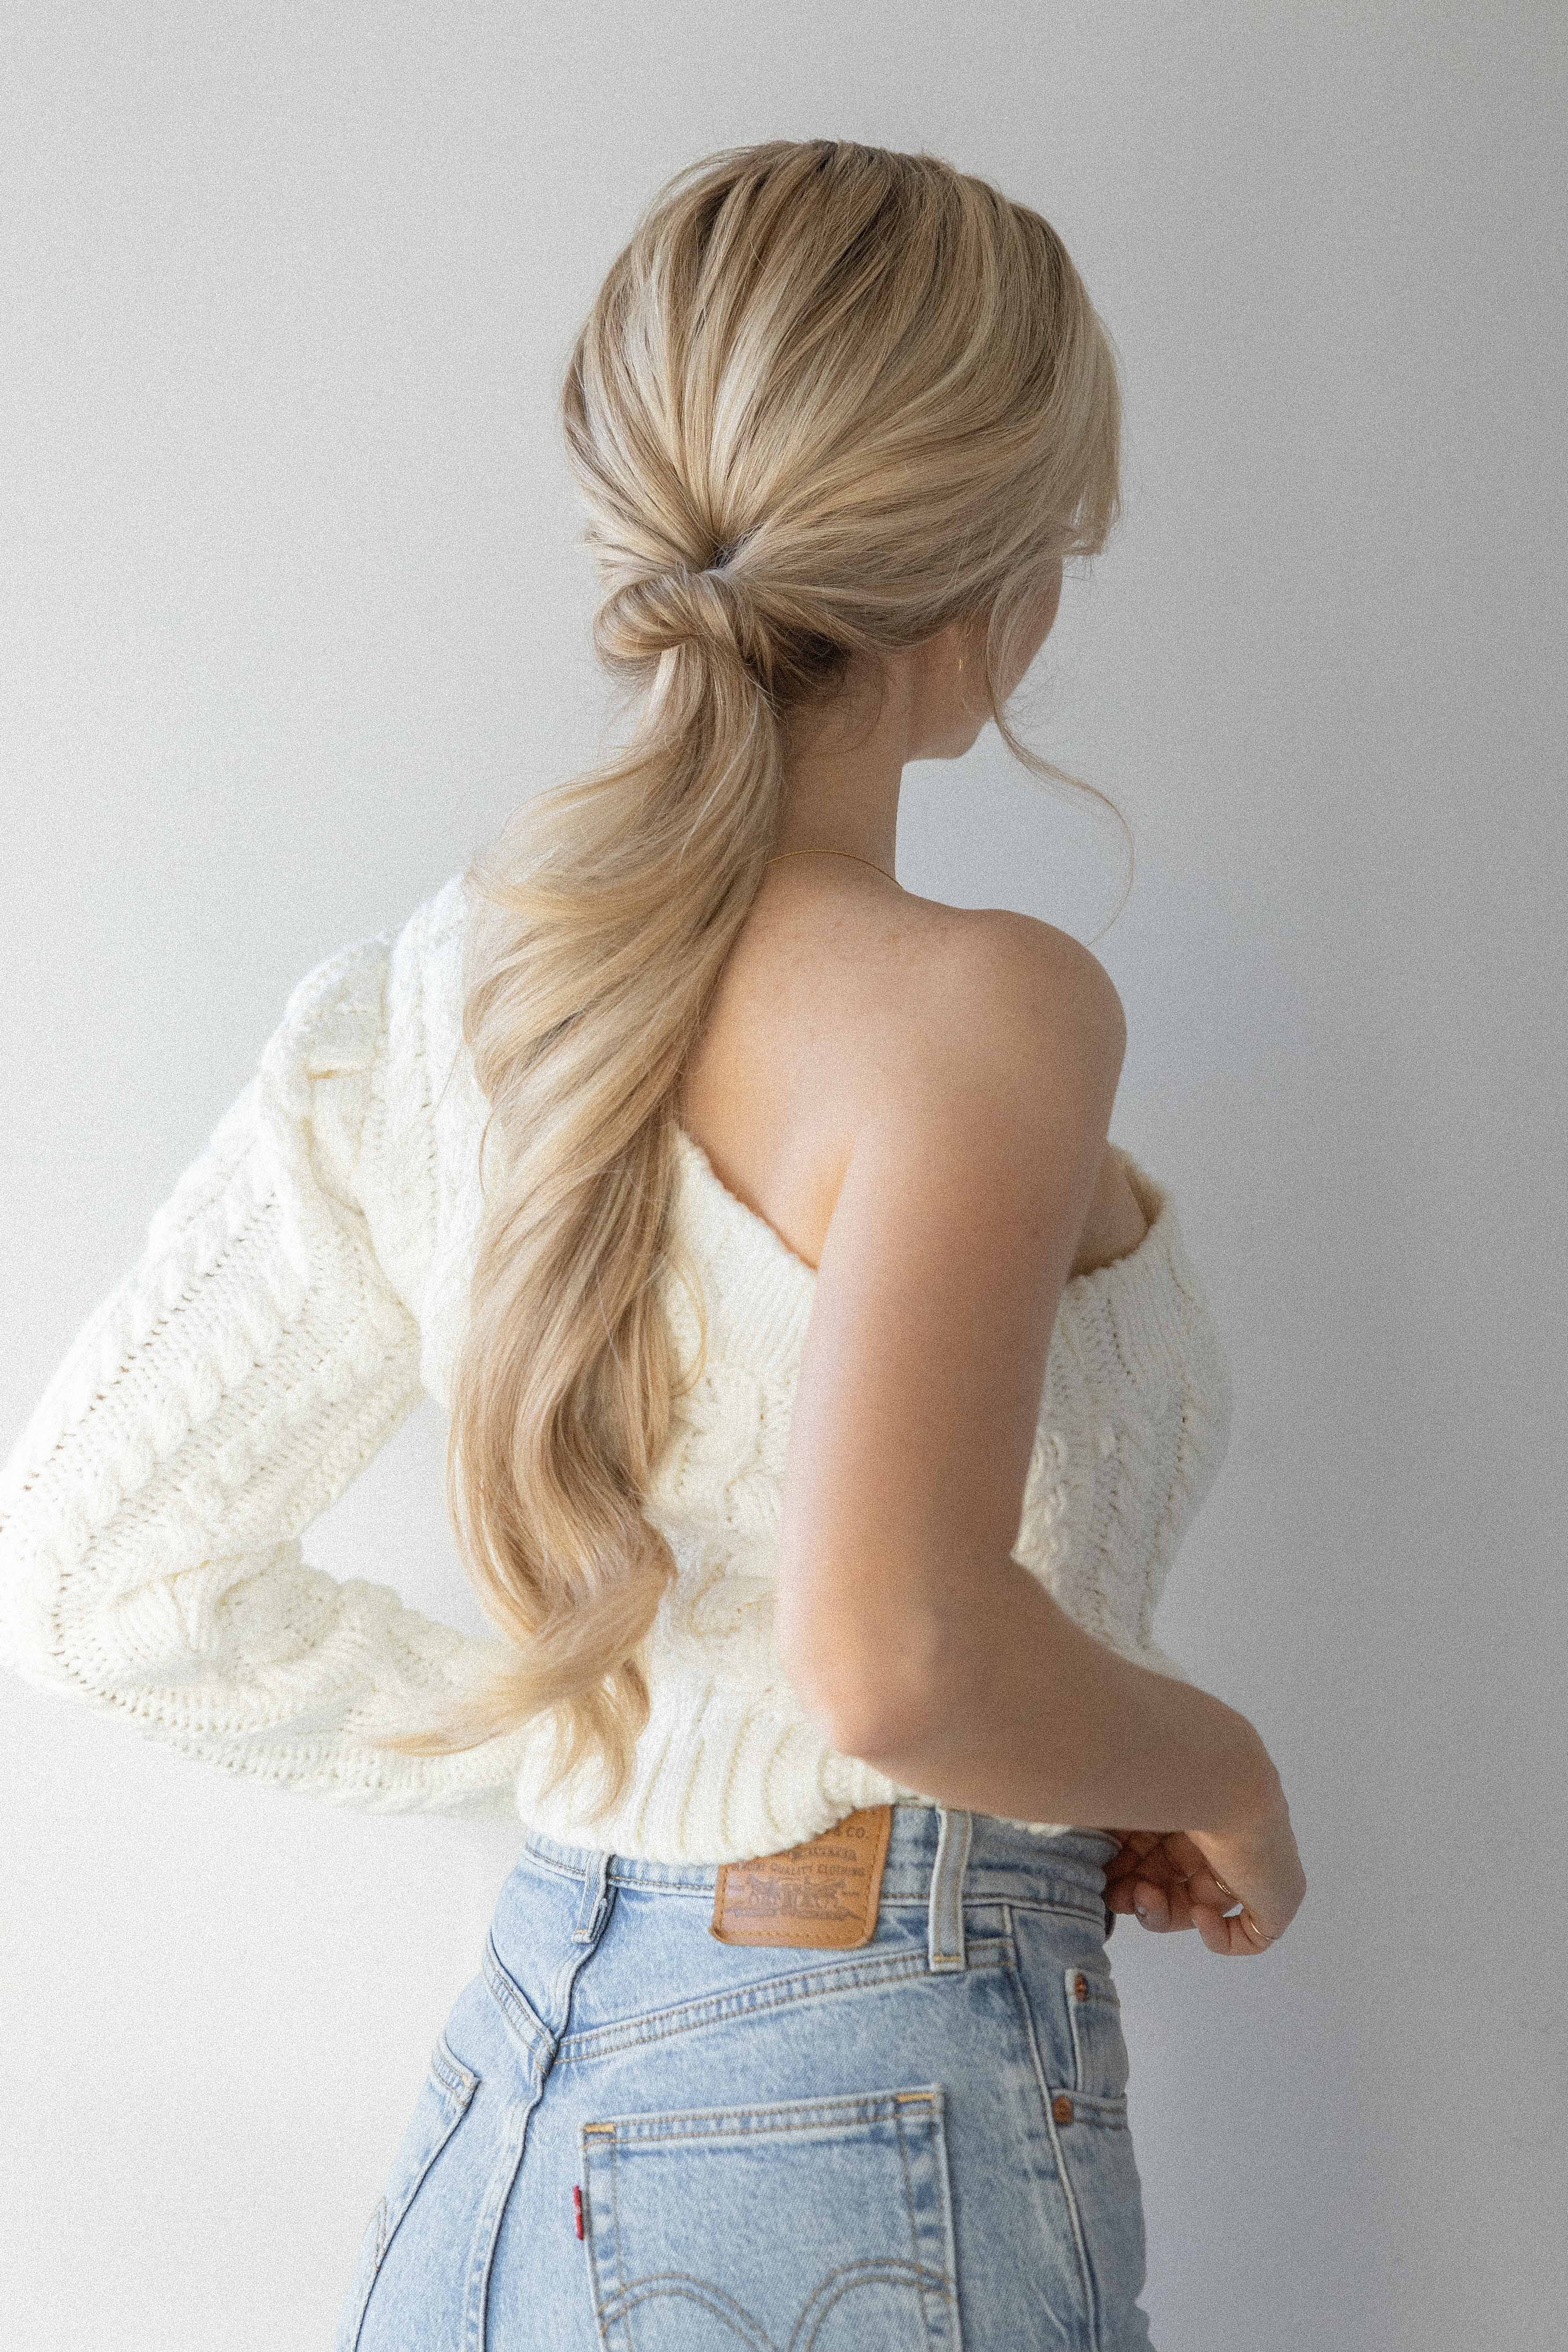 3 EASY PONYTAIL HAIRSTYLES TUTORIAL 2020 | Alex Gaboury